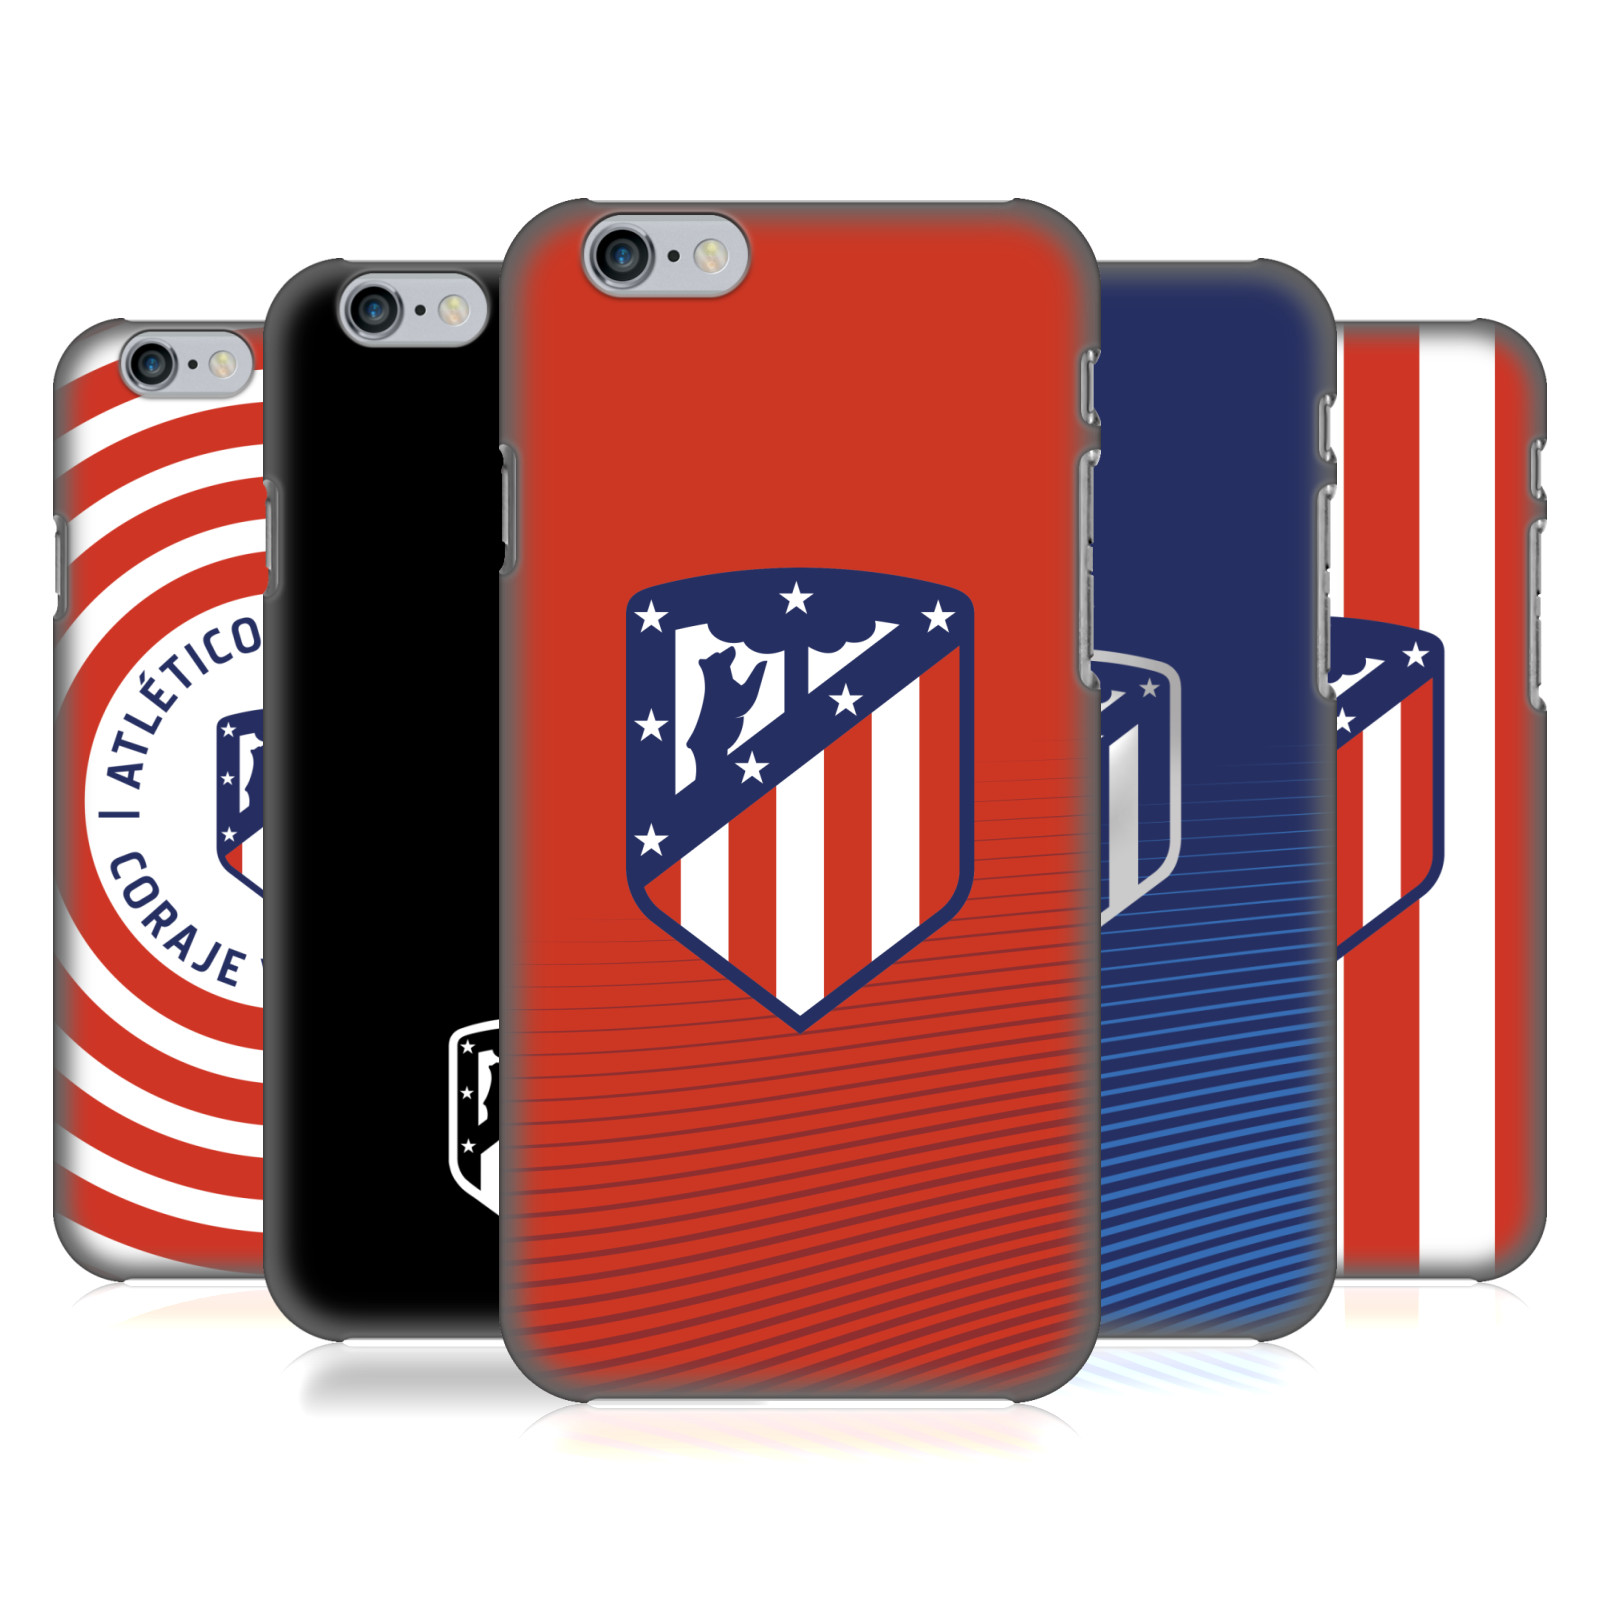 Atletico de Madrid Phone and Tablet cases